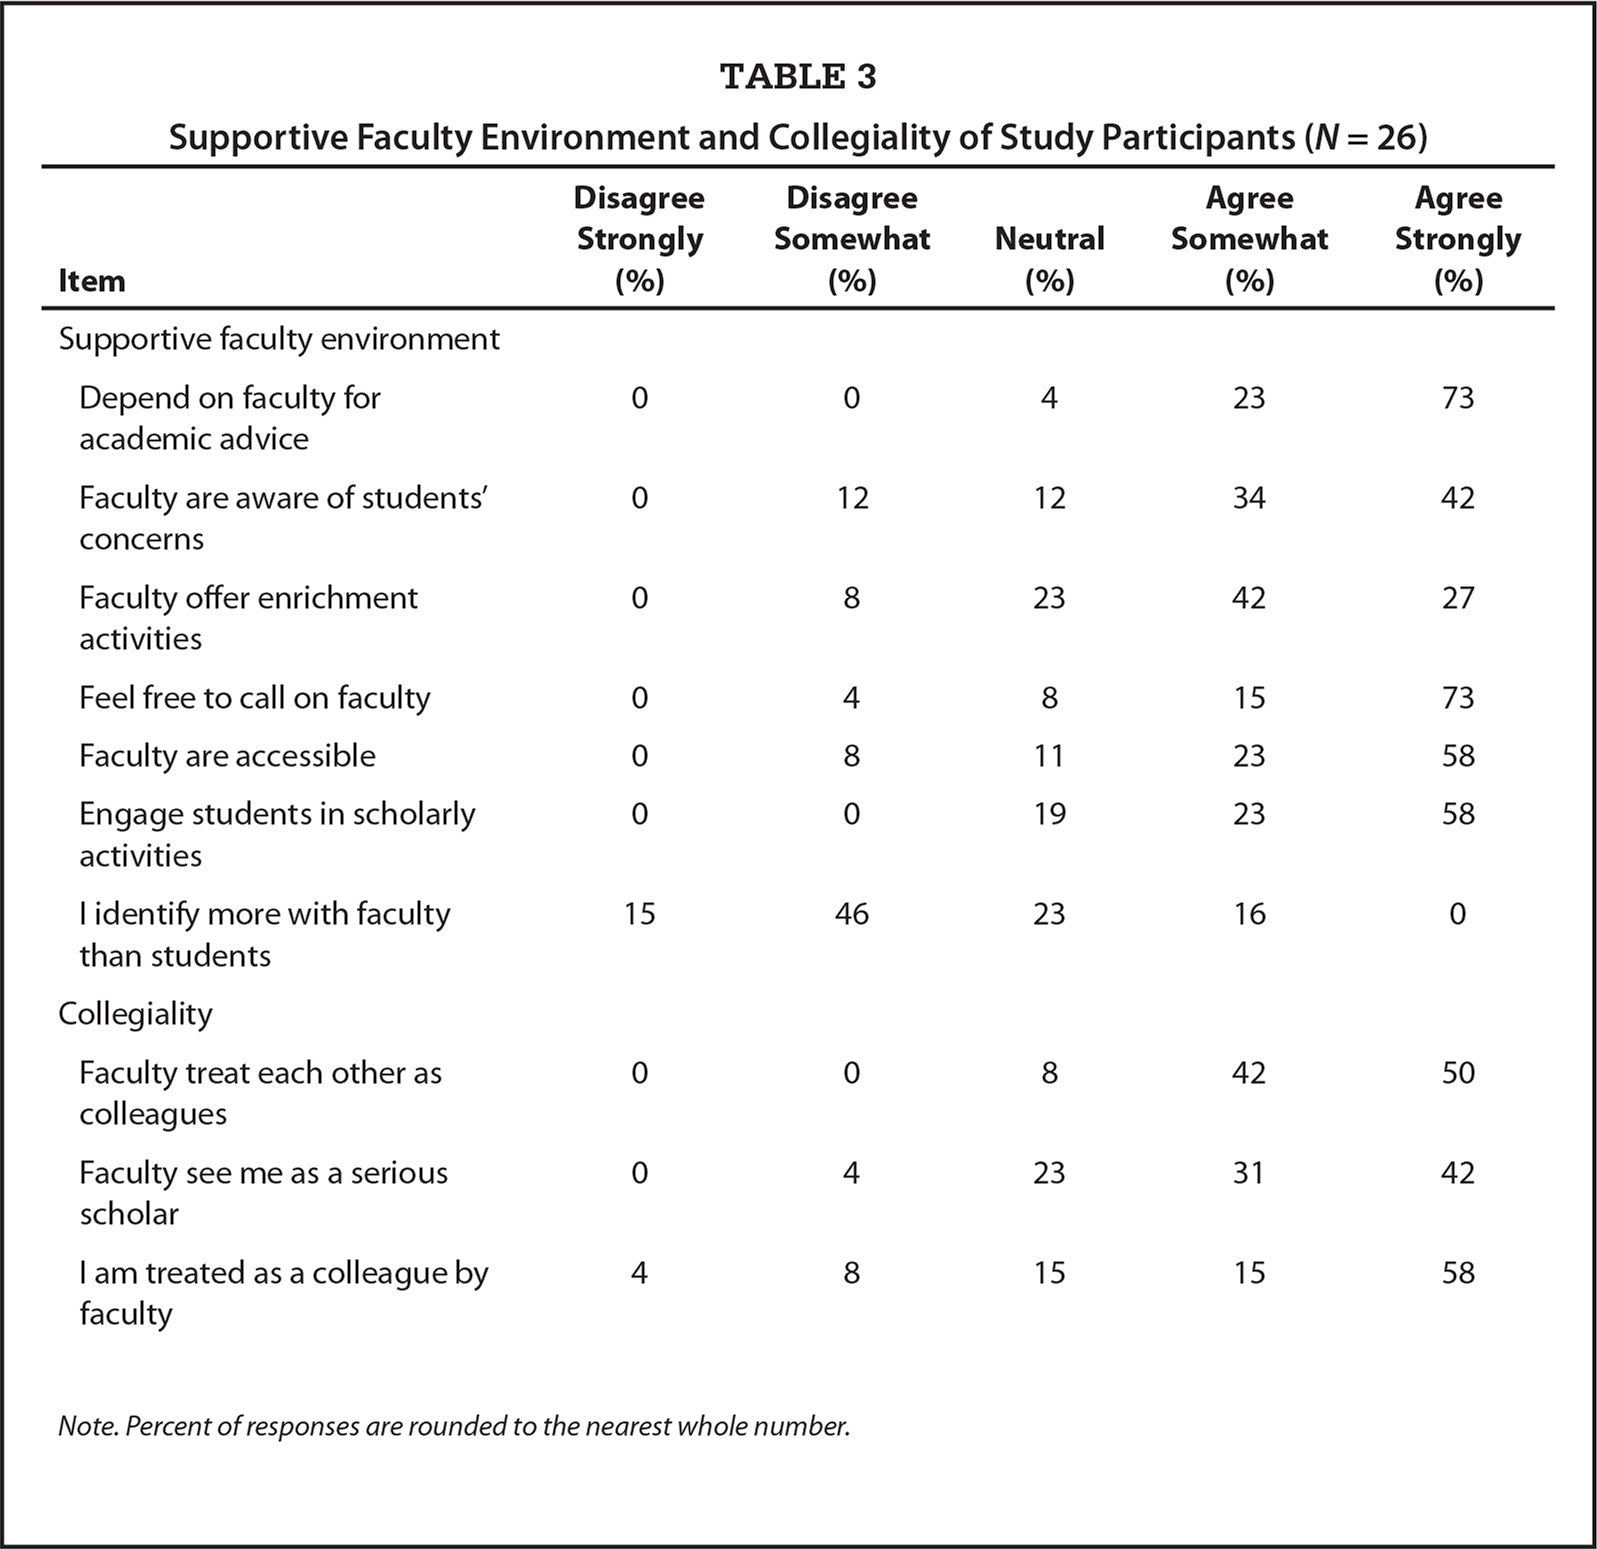 Supportive Faculty Environment and Collegiality of Study Participants (N = 26)